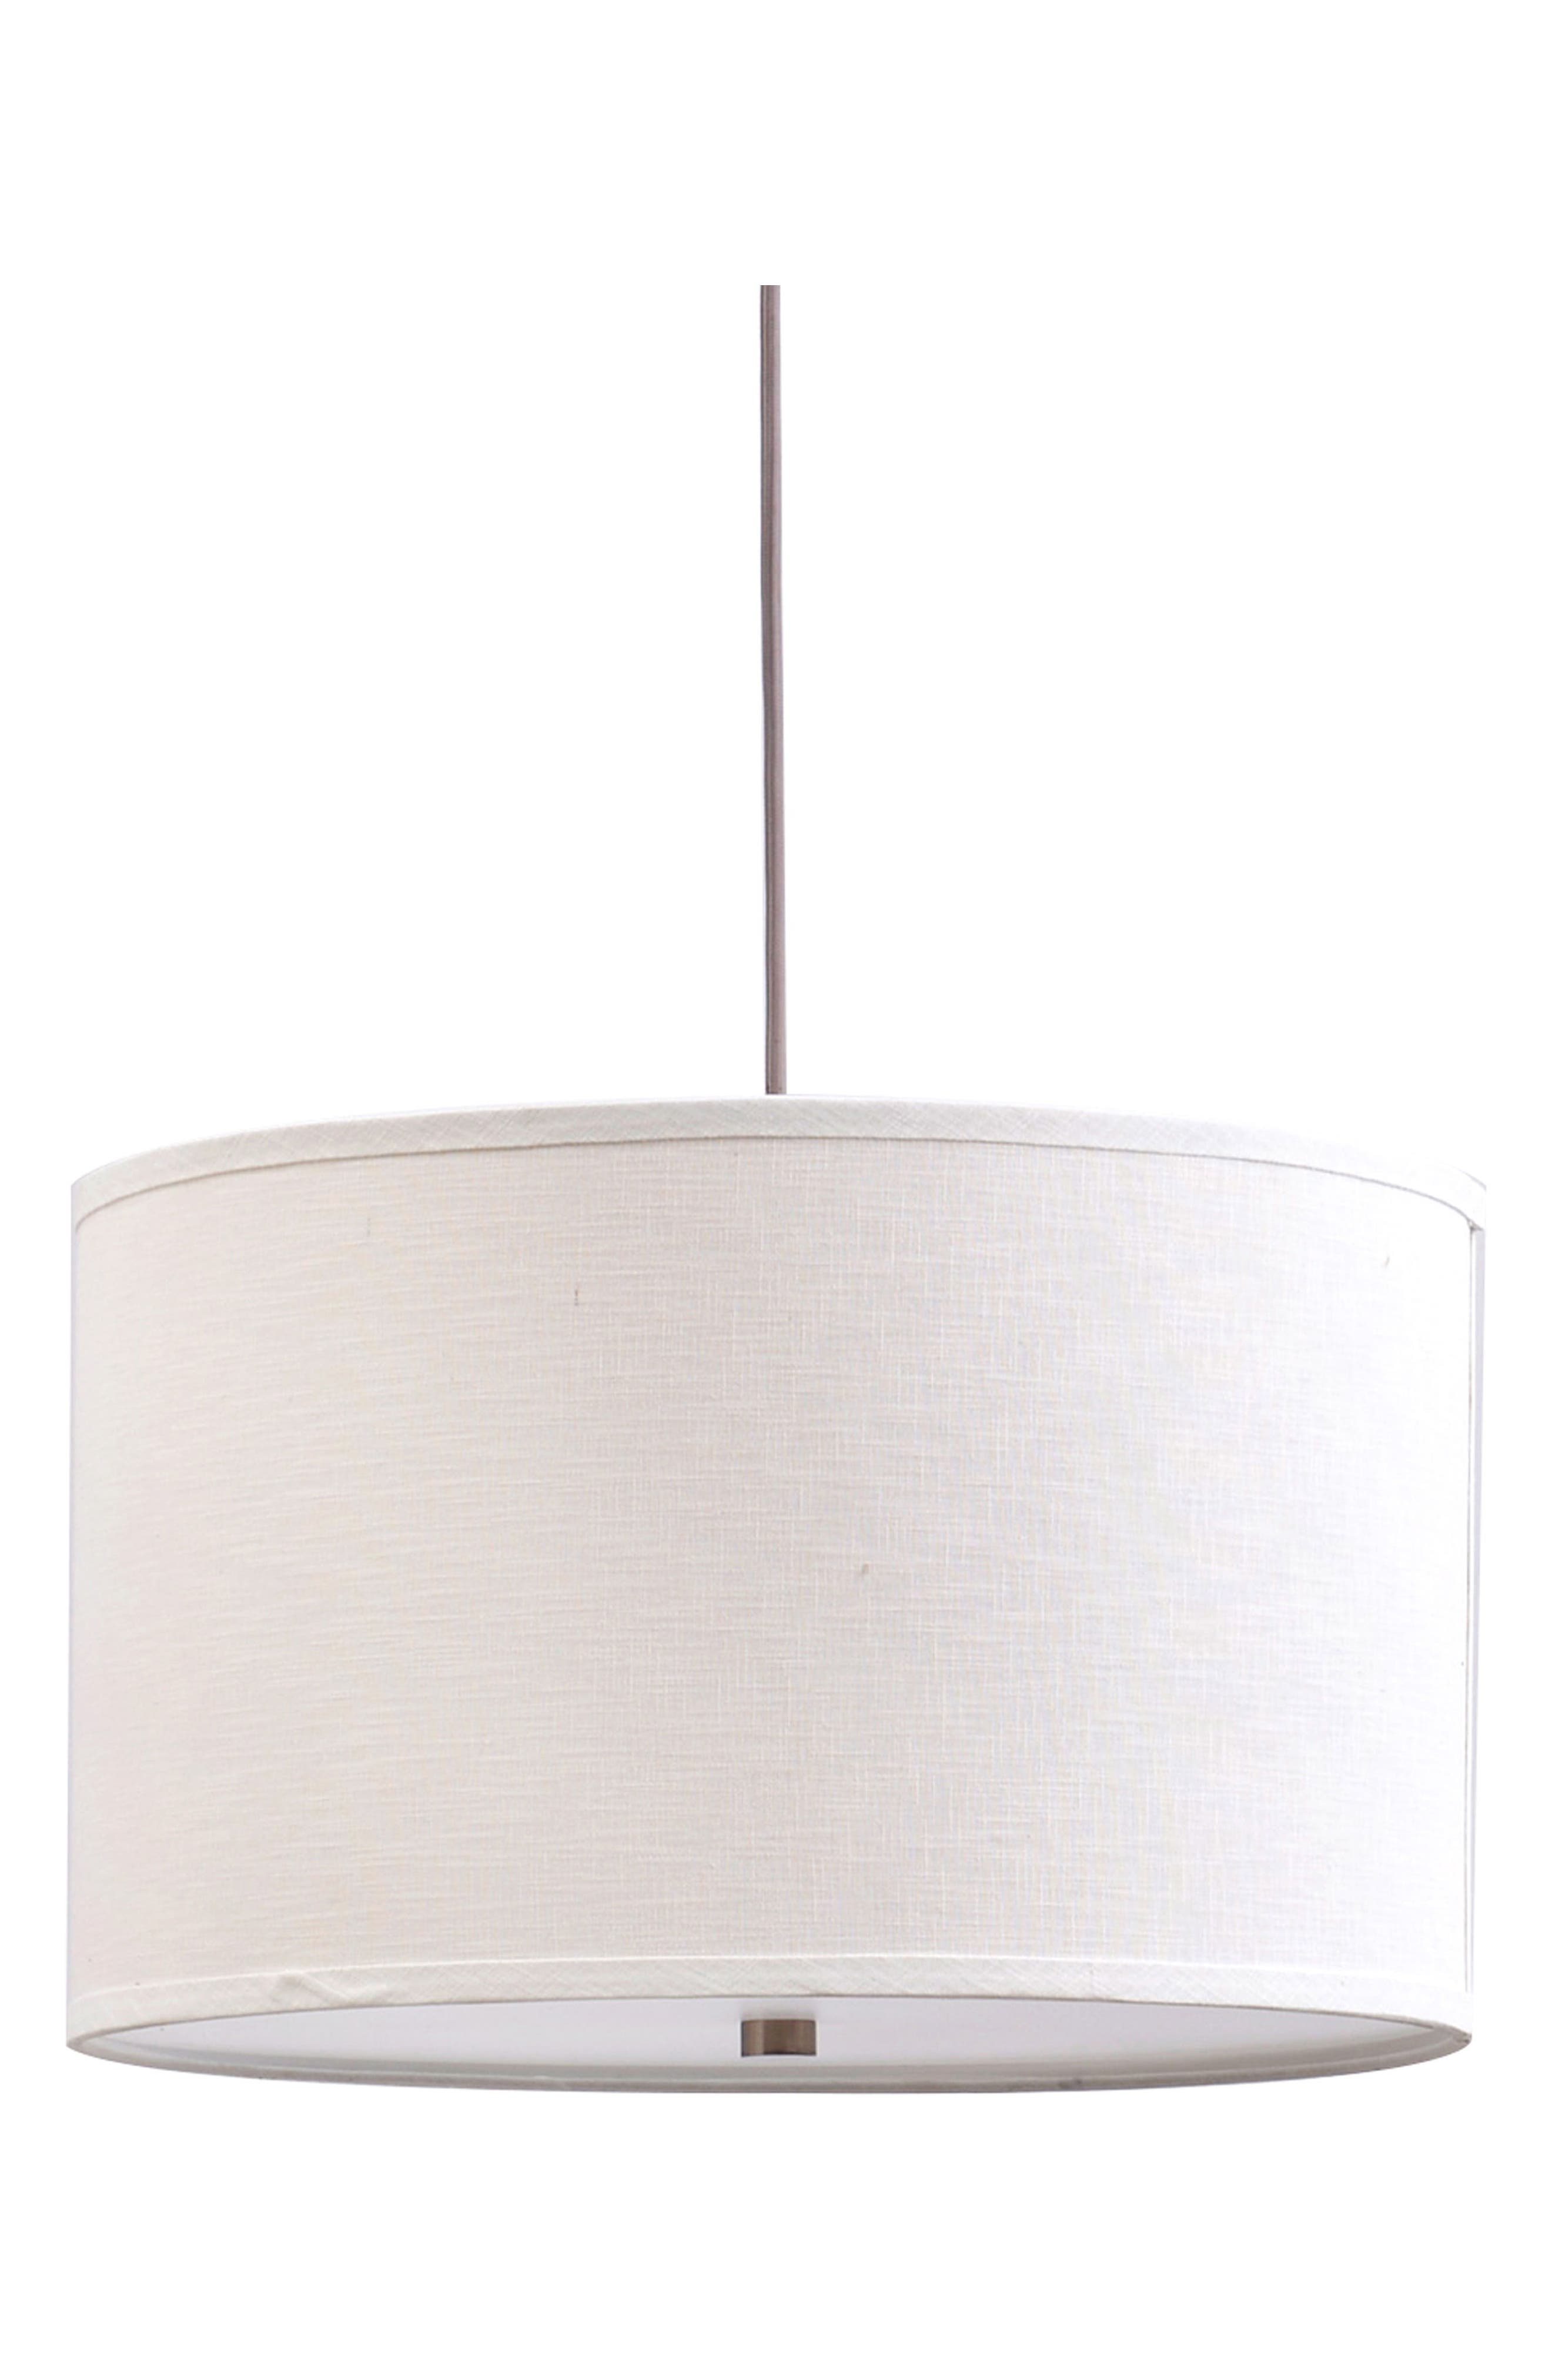 Madison Three-Light Pendant Lamp,                             Main thumbnail 1, color,                             220